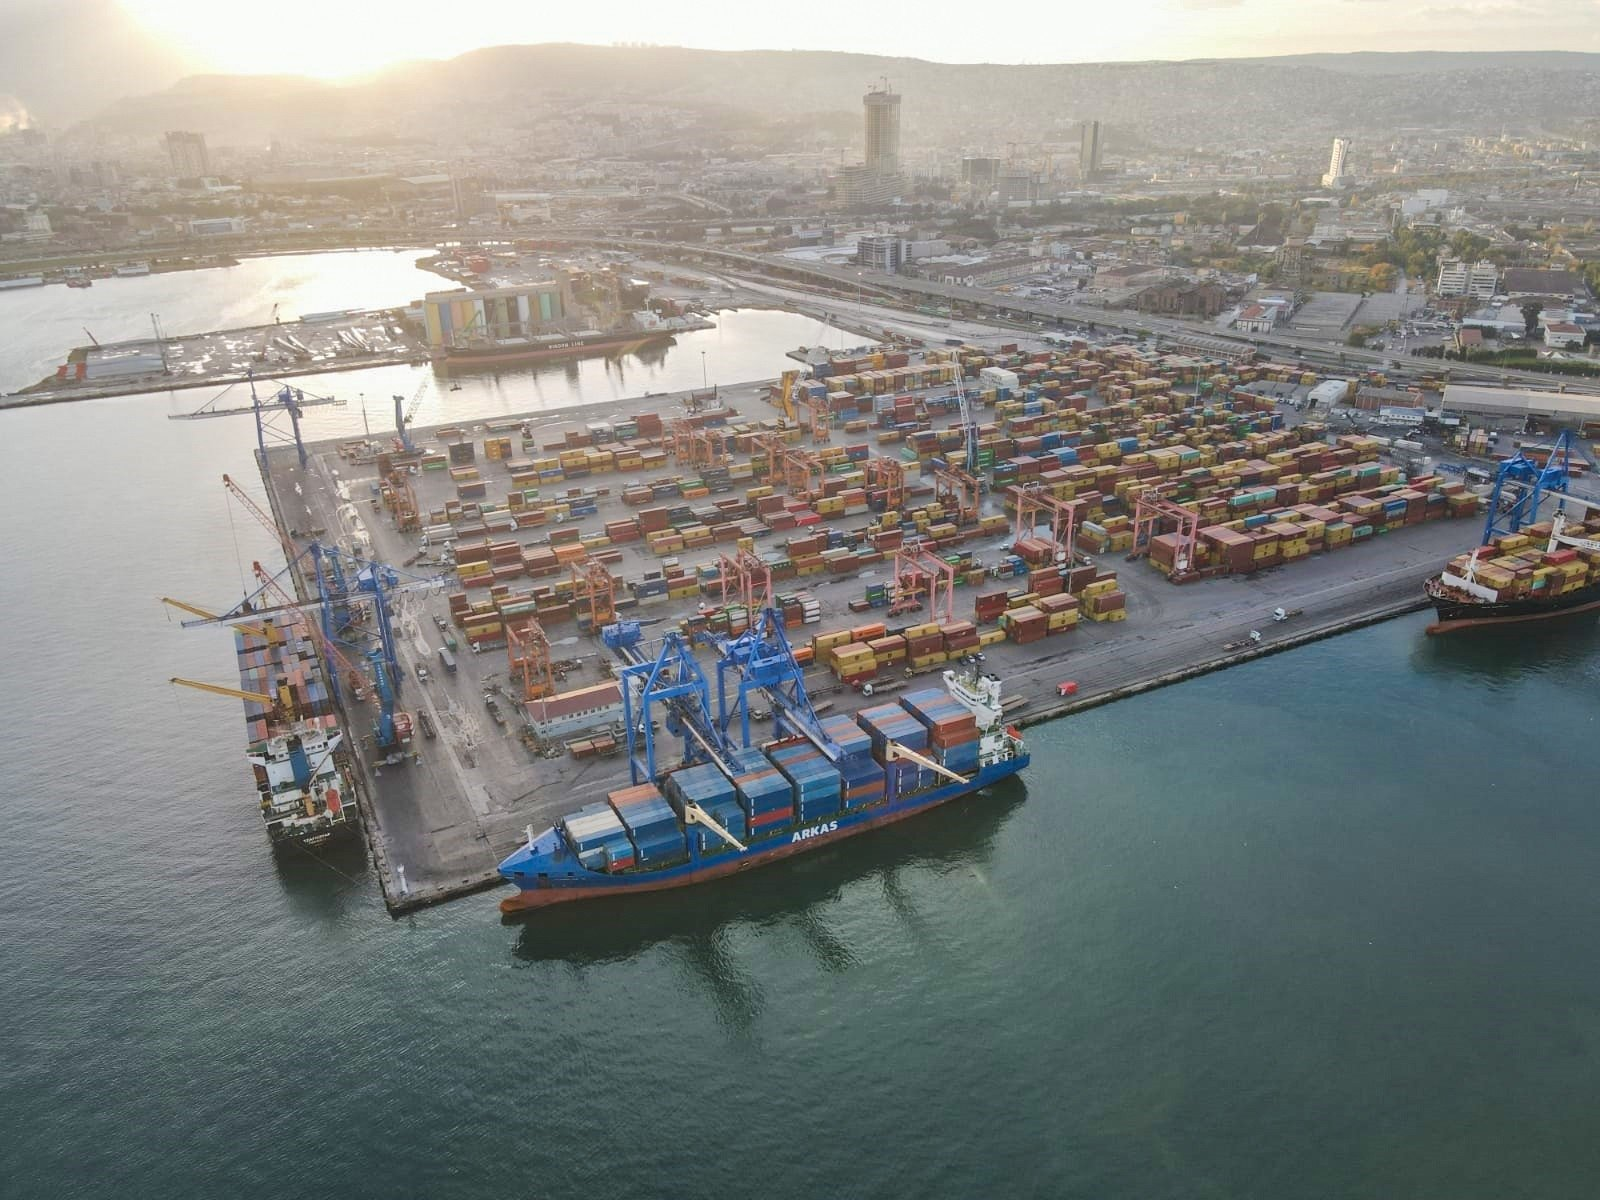 An aerial view of the Port of Izmir in western Turkey, Dec. 10, 2020. (IHA Photo)